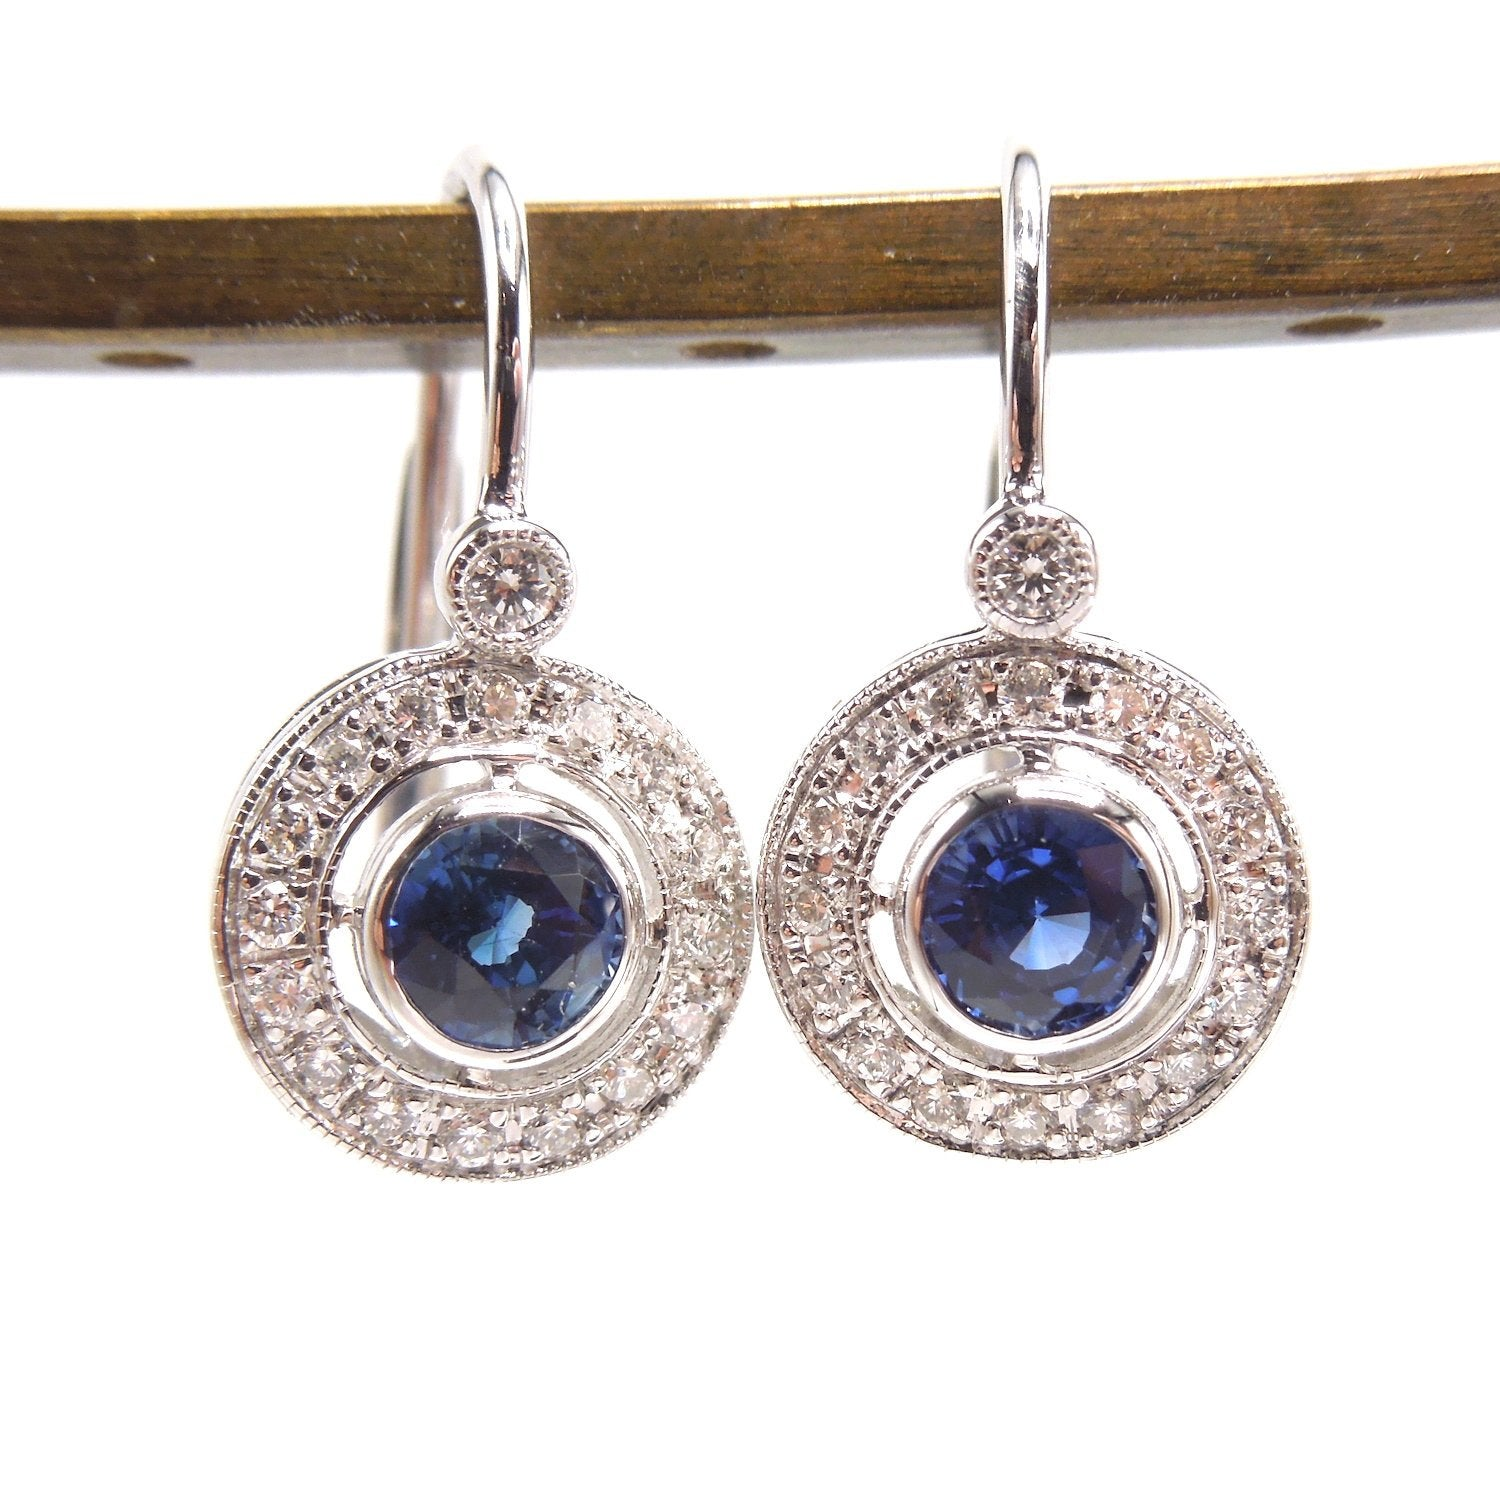 Art Deco Style Diamond and Sapphire Lever Back Drop Earrings